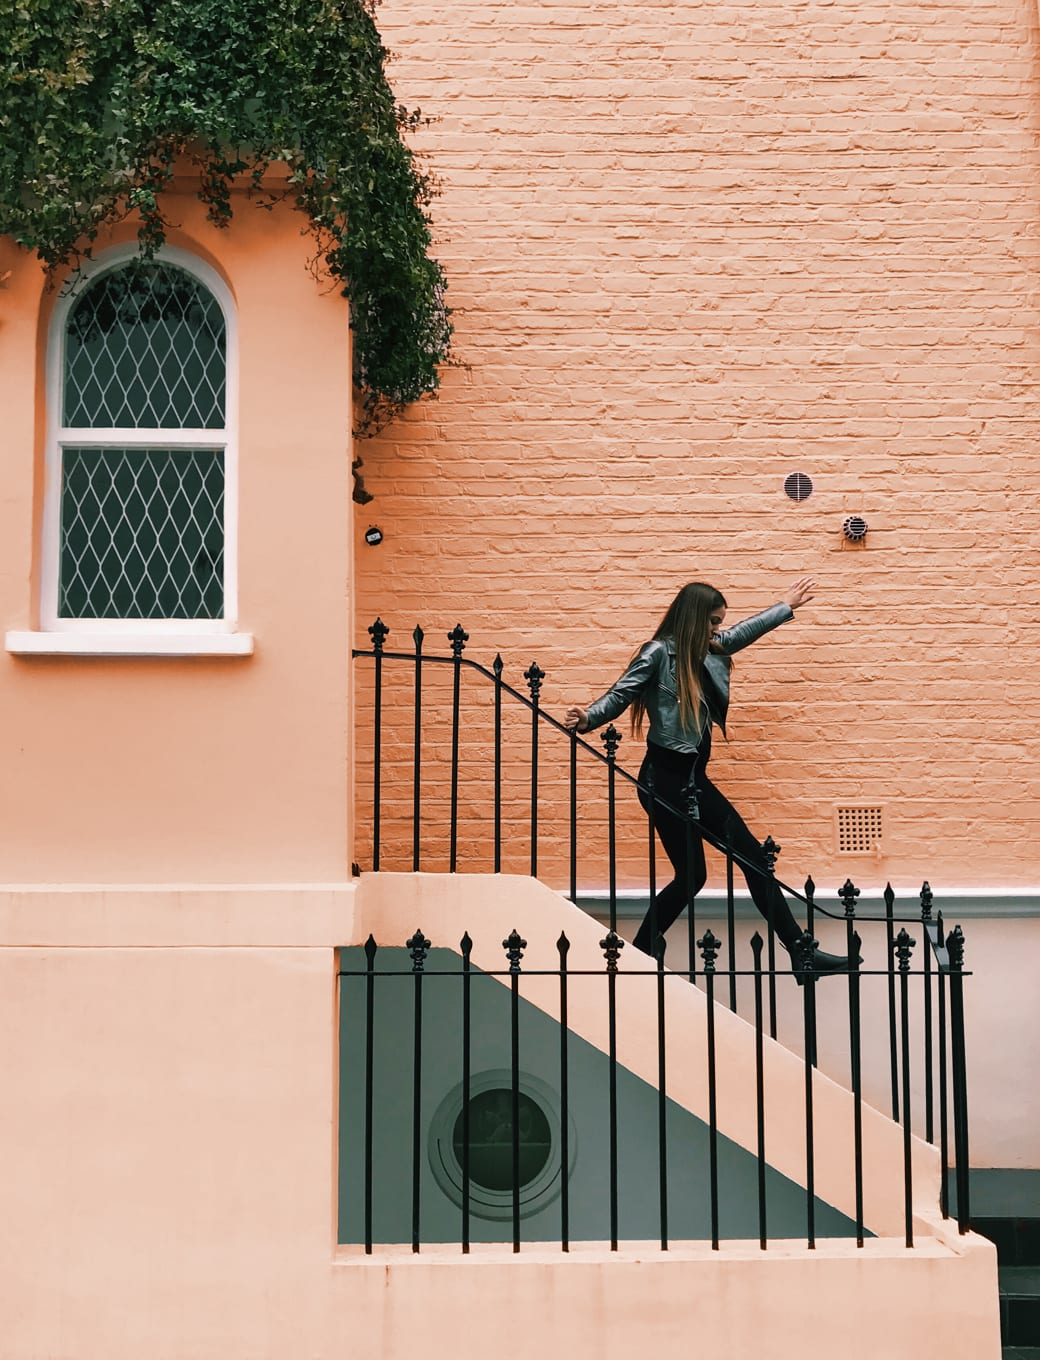 Image of a woman walking down steps.